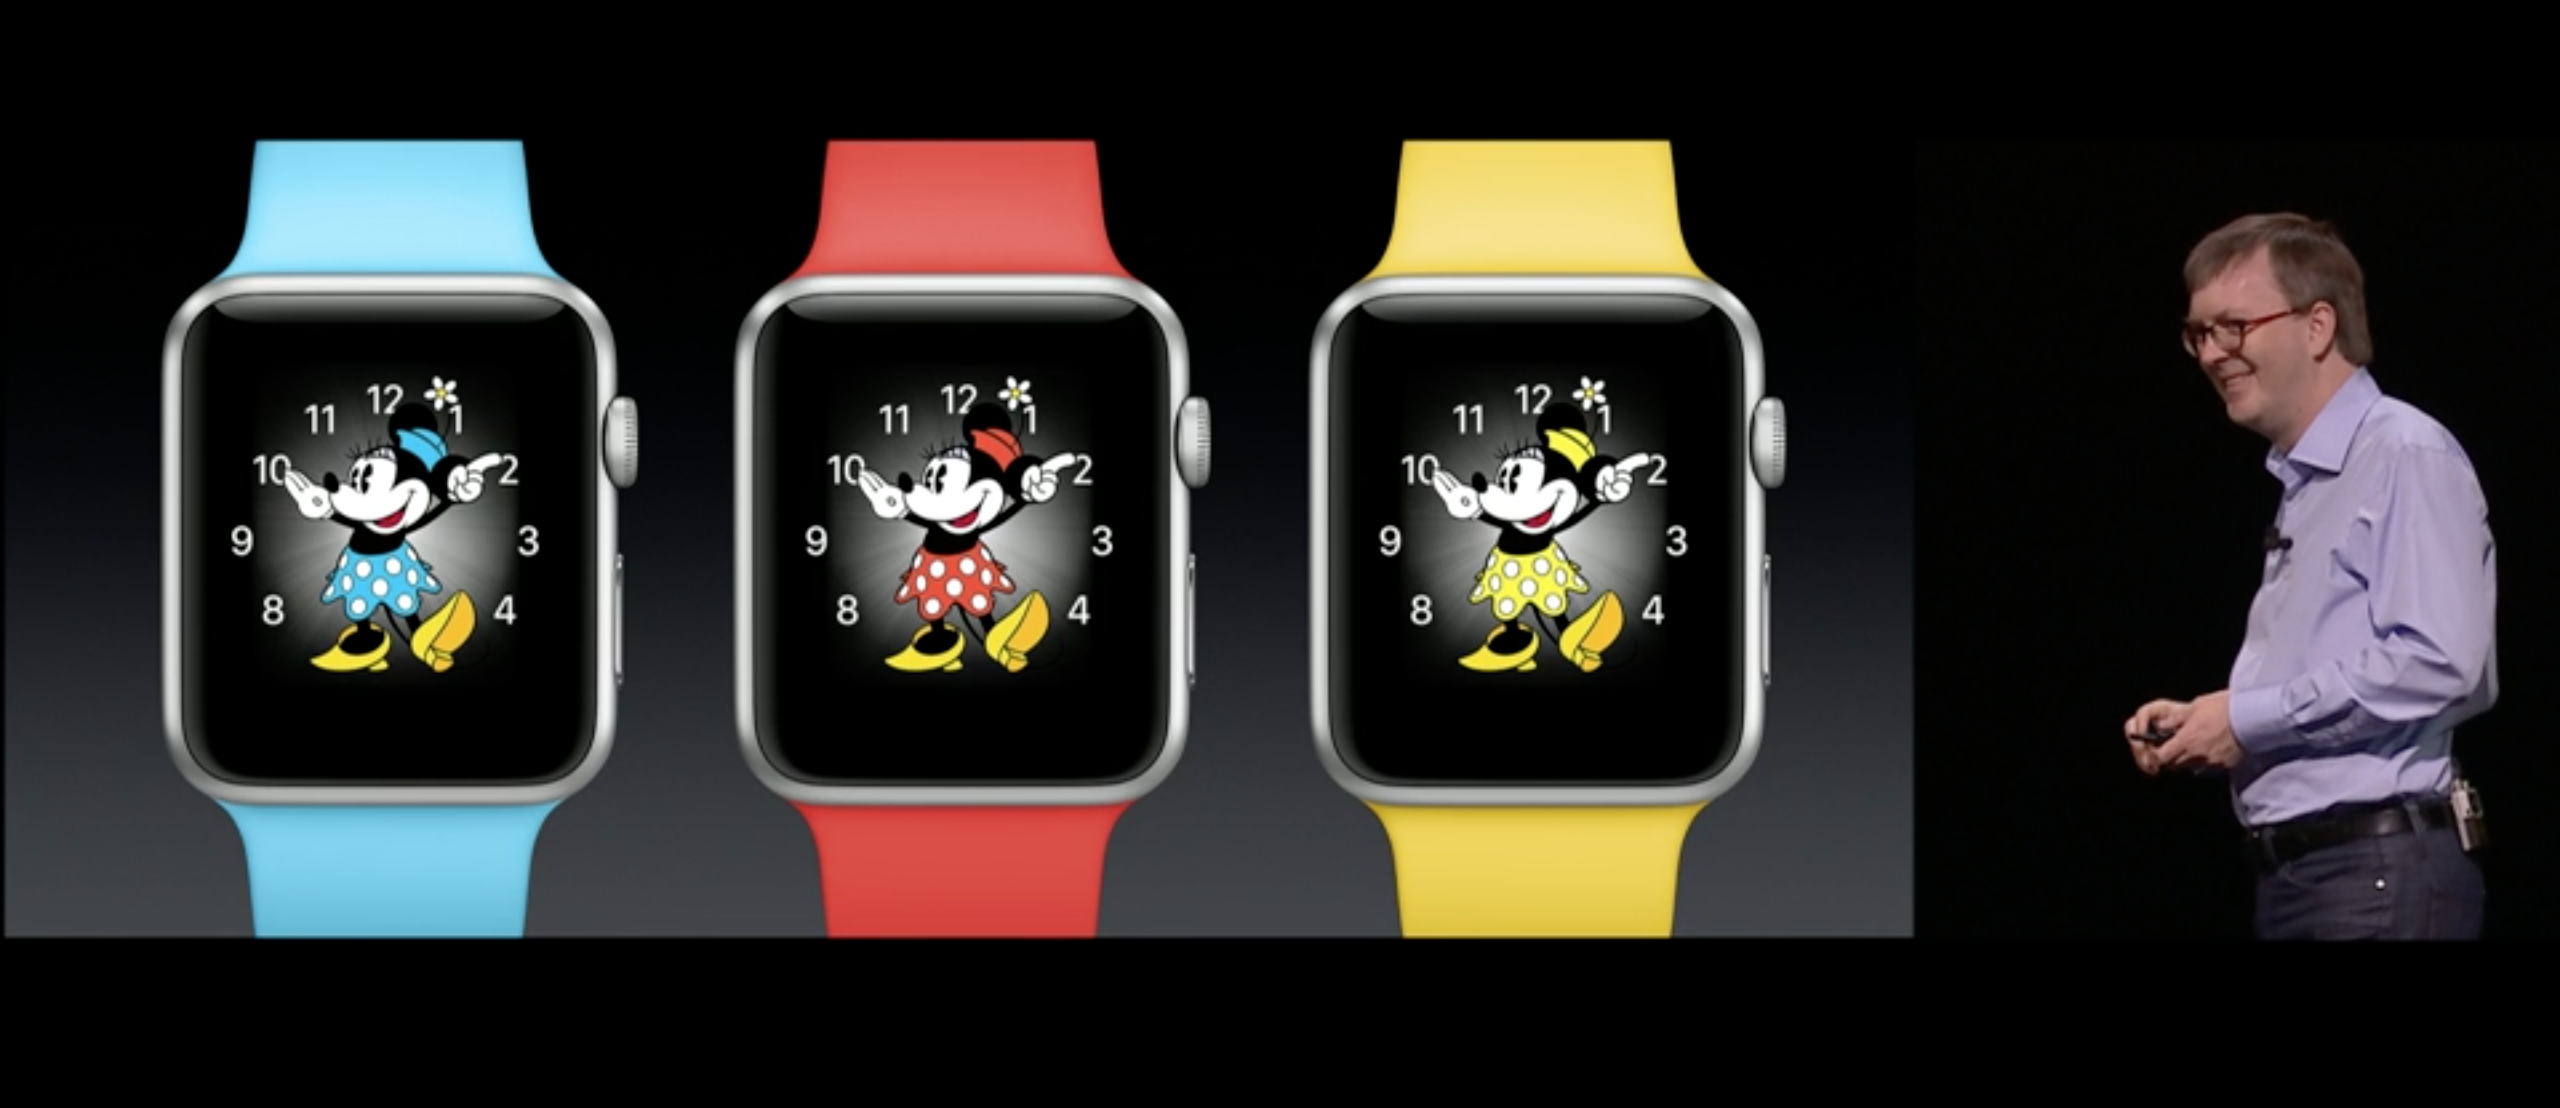 Minnie watch faces coming in Apple's watchOS 3 for the Apple Watch.